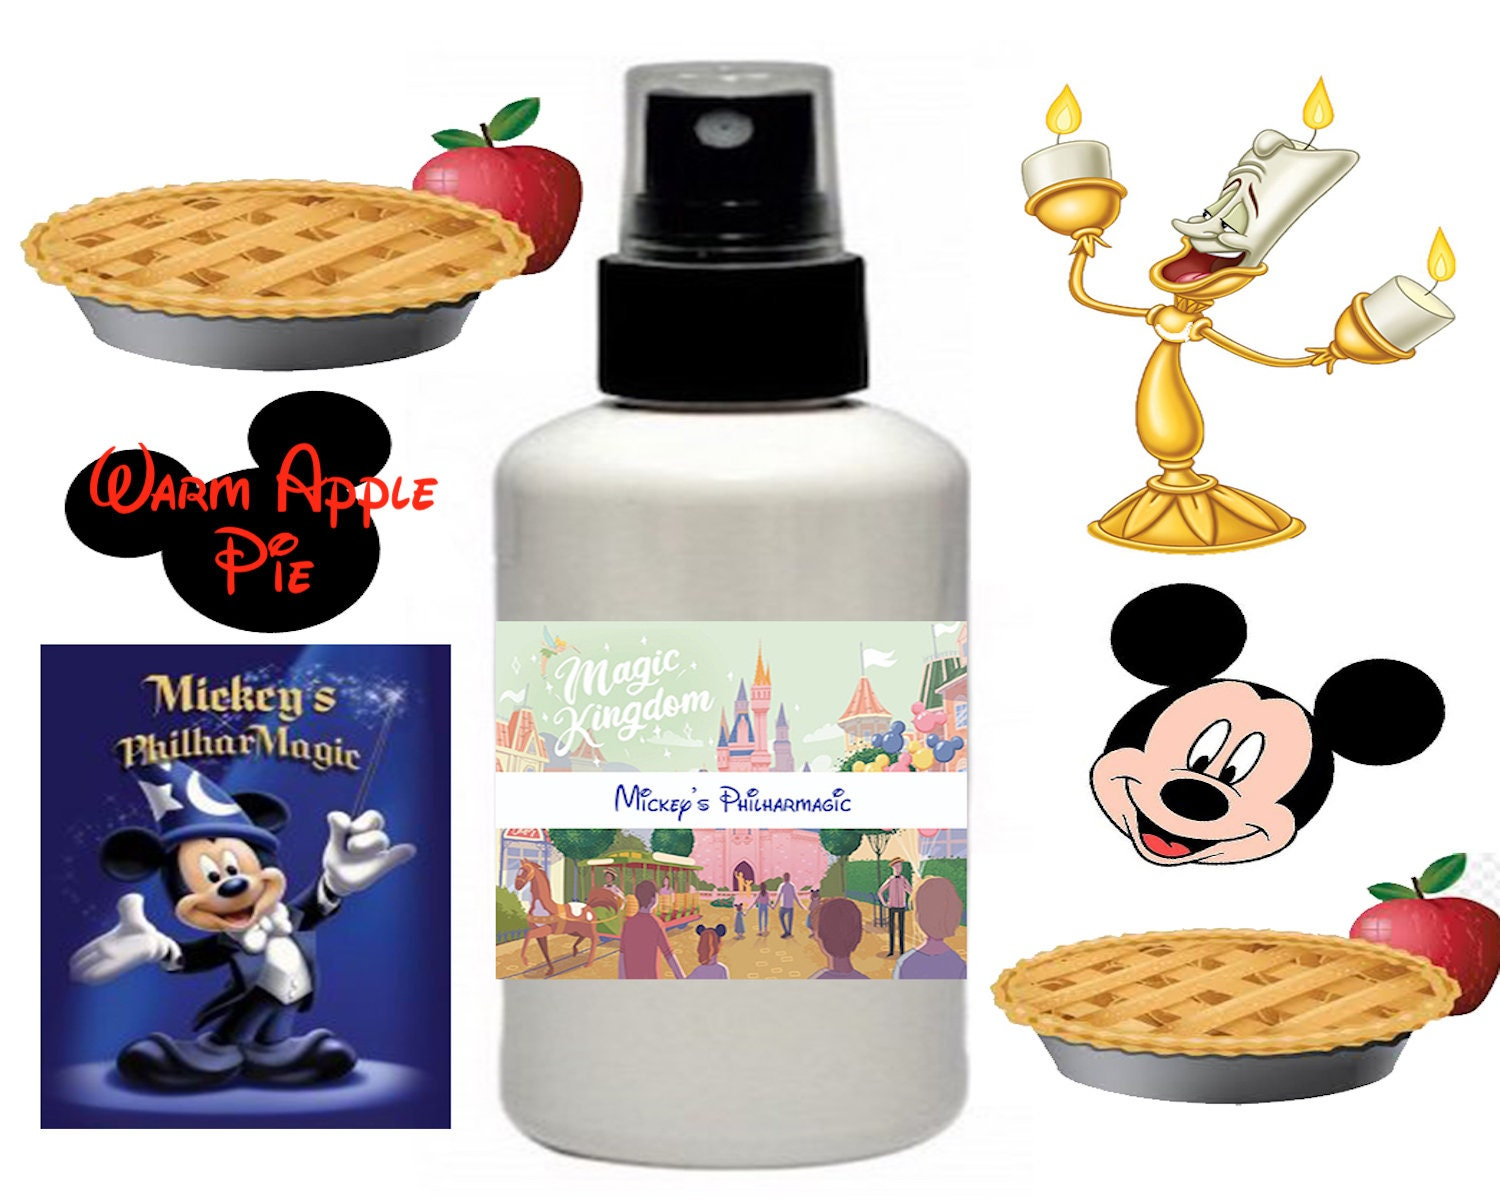 Mickeys Philharmagic Warm Apple Pie Fragrance 2 oz Room Spray